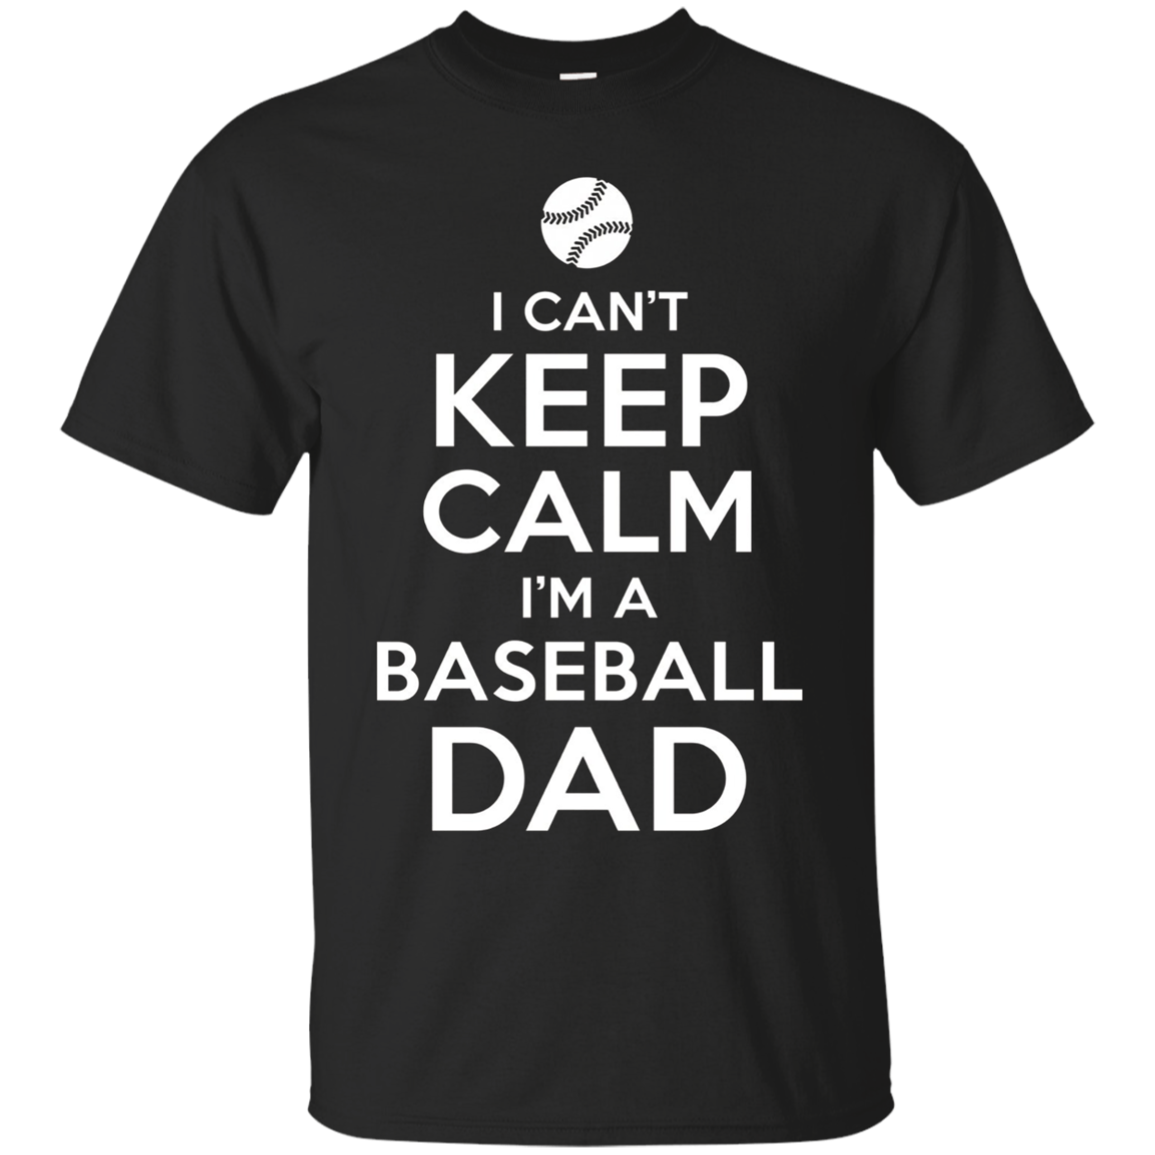 Mens Can't Keep Calm Baseball Dad Funny Sport T-Shirt Fathers Day